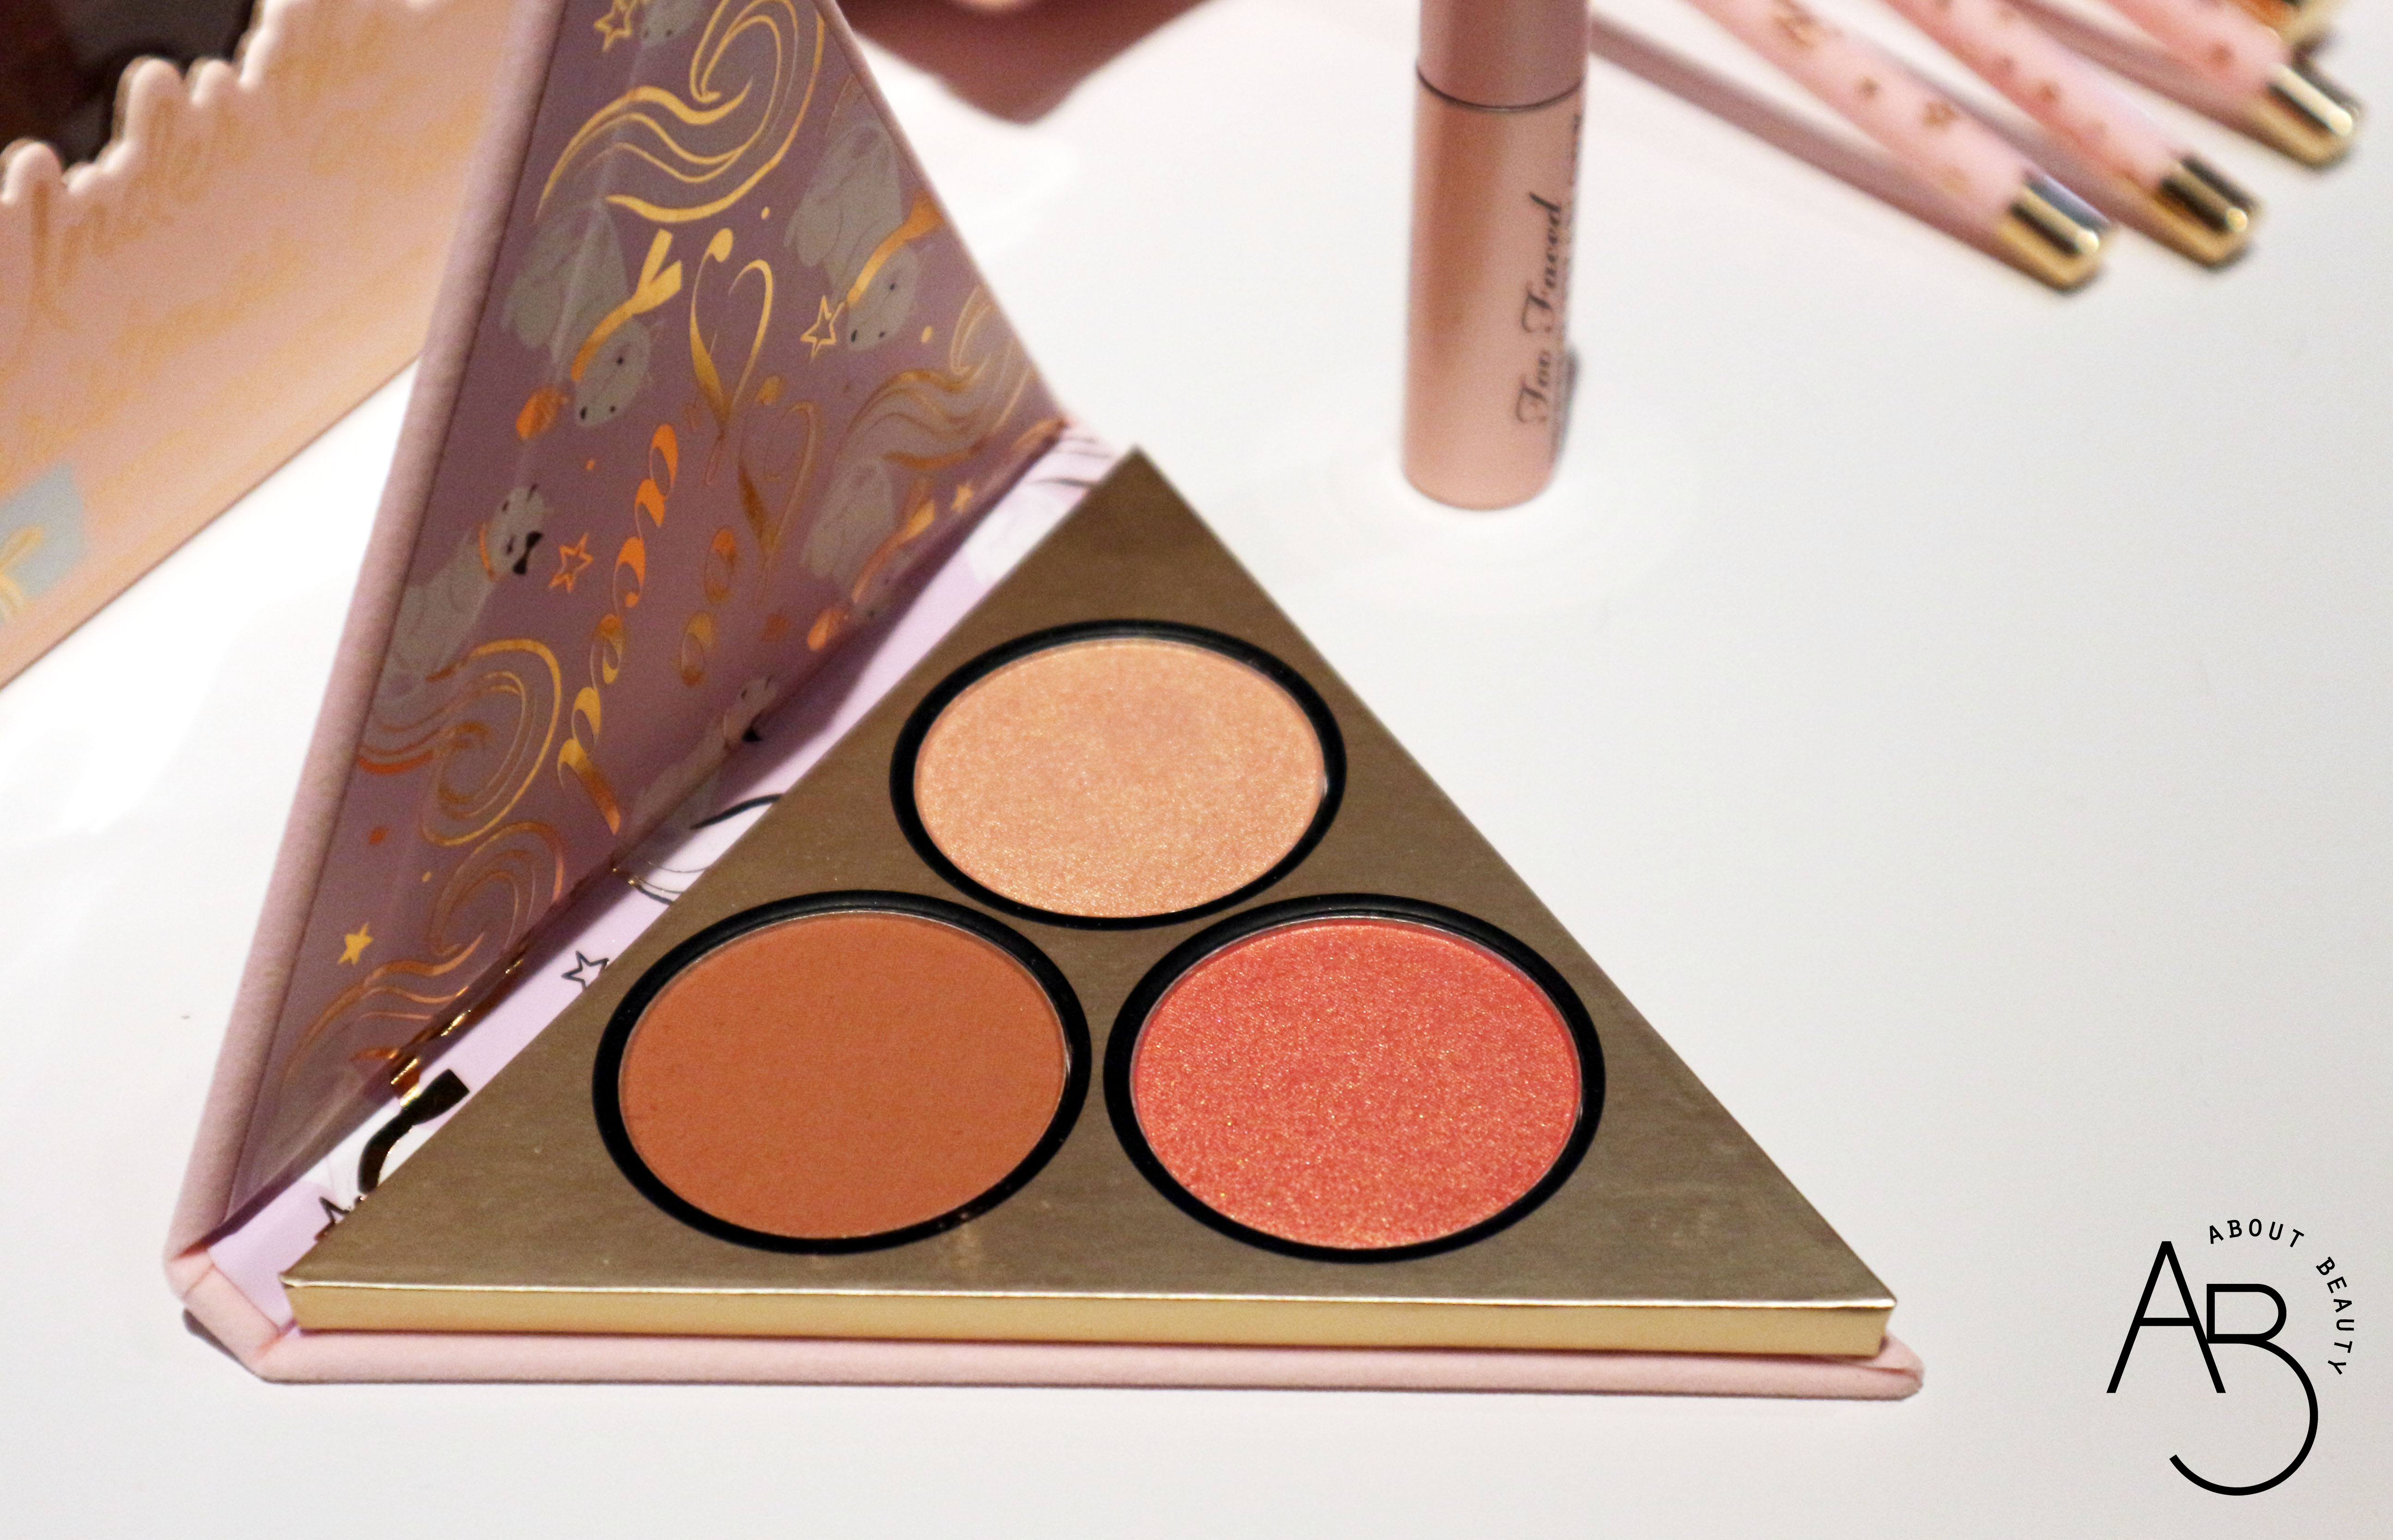 Sephora Natale 2018 Novita da non perdere - Make-up - Too Faced Cofanetti Palette Under the christmas tree - Review, recensione, swatch, info, prezzo, dove acquistare, data di uscita, packaging